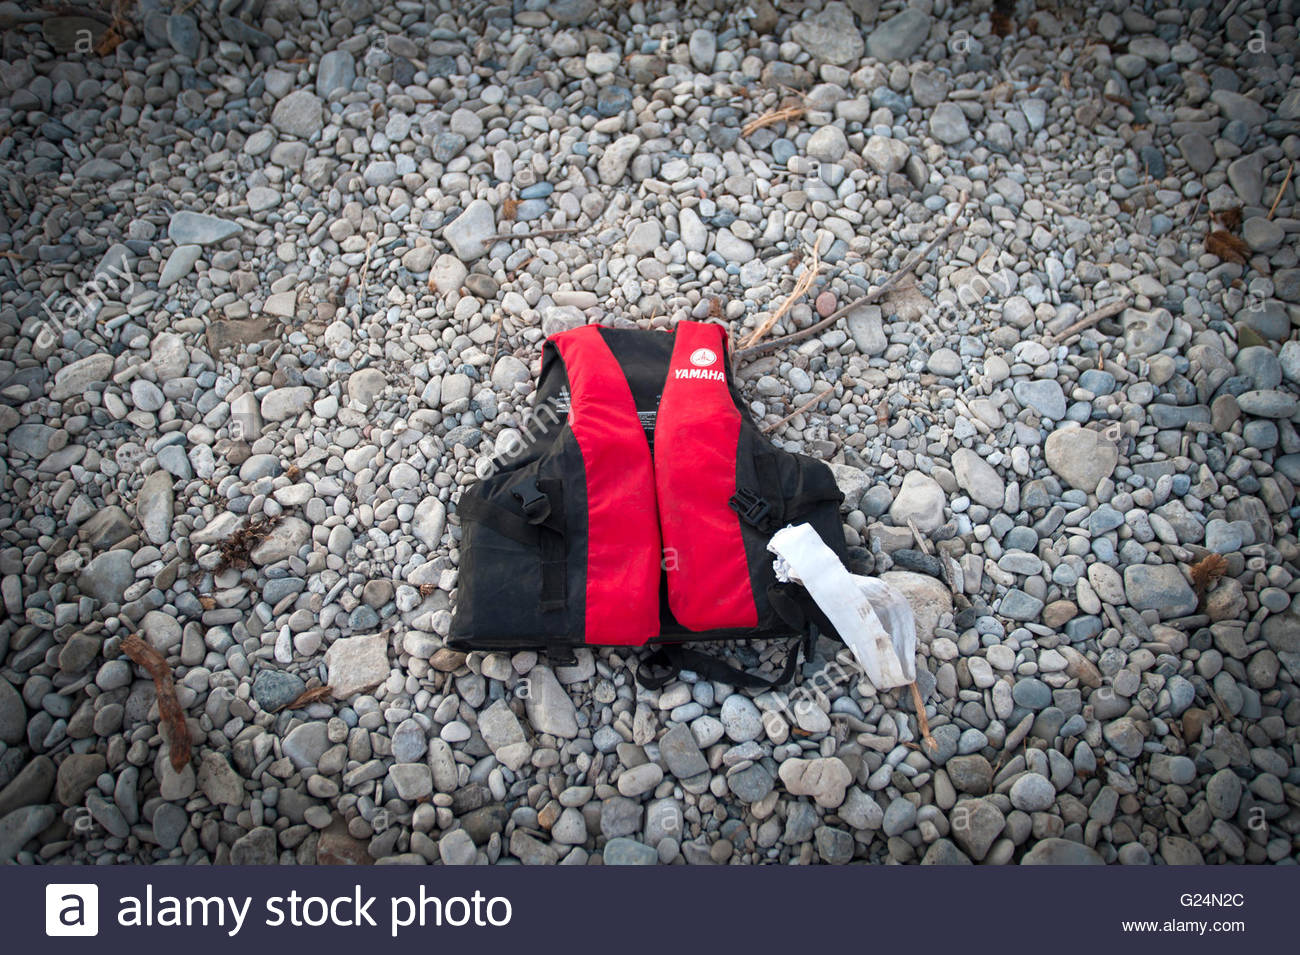 A lone life jacket from a refugee discarded on the beach in Lesbos, Greece - Stock Image